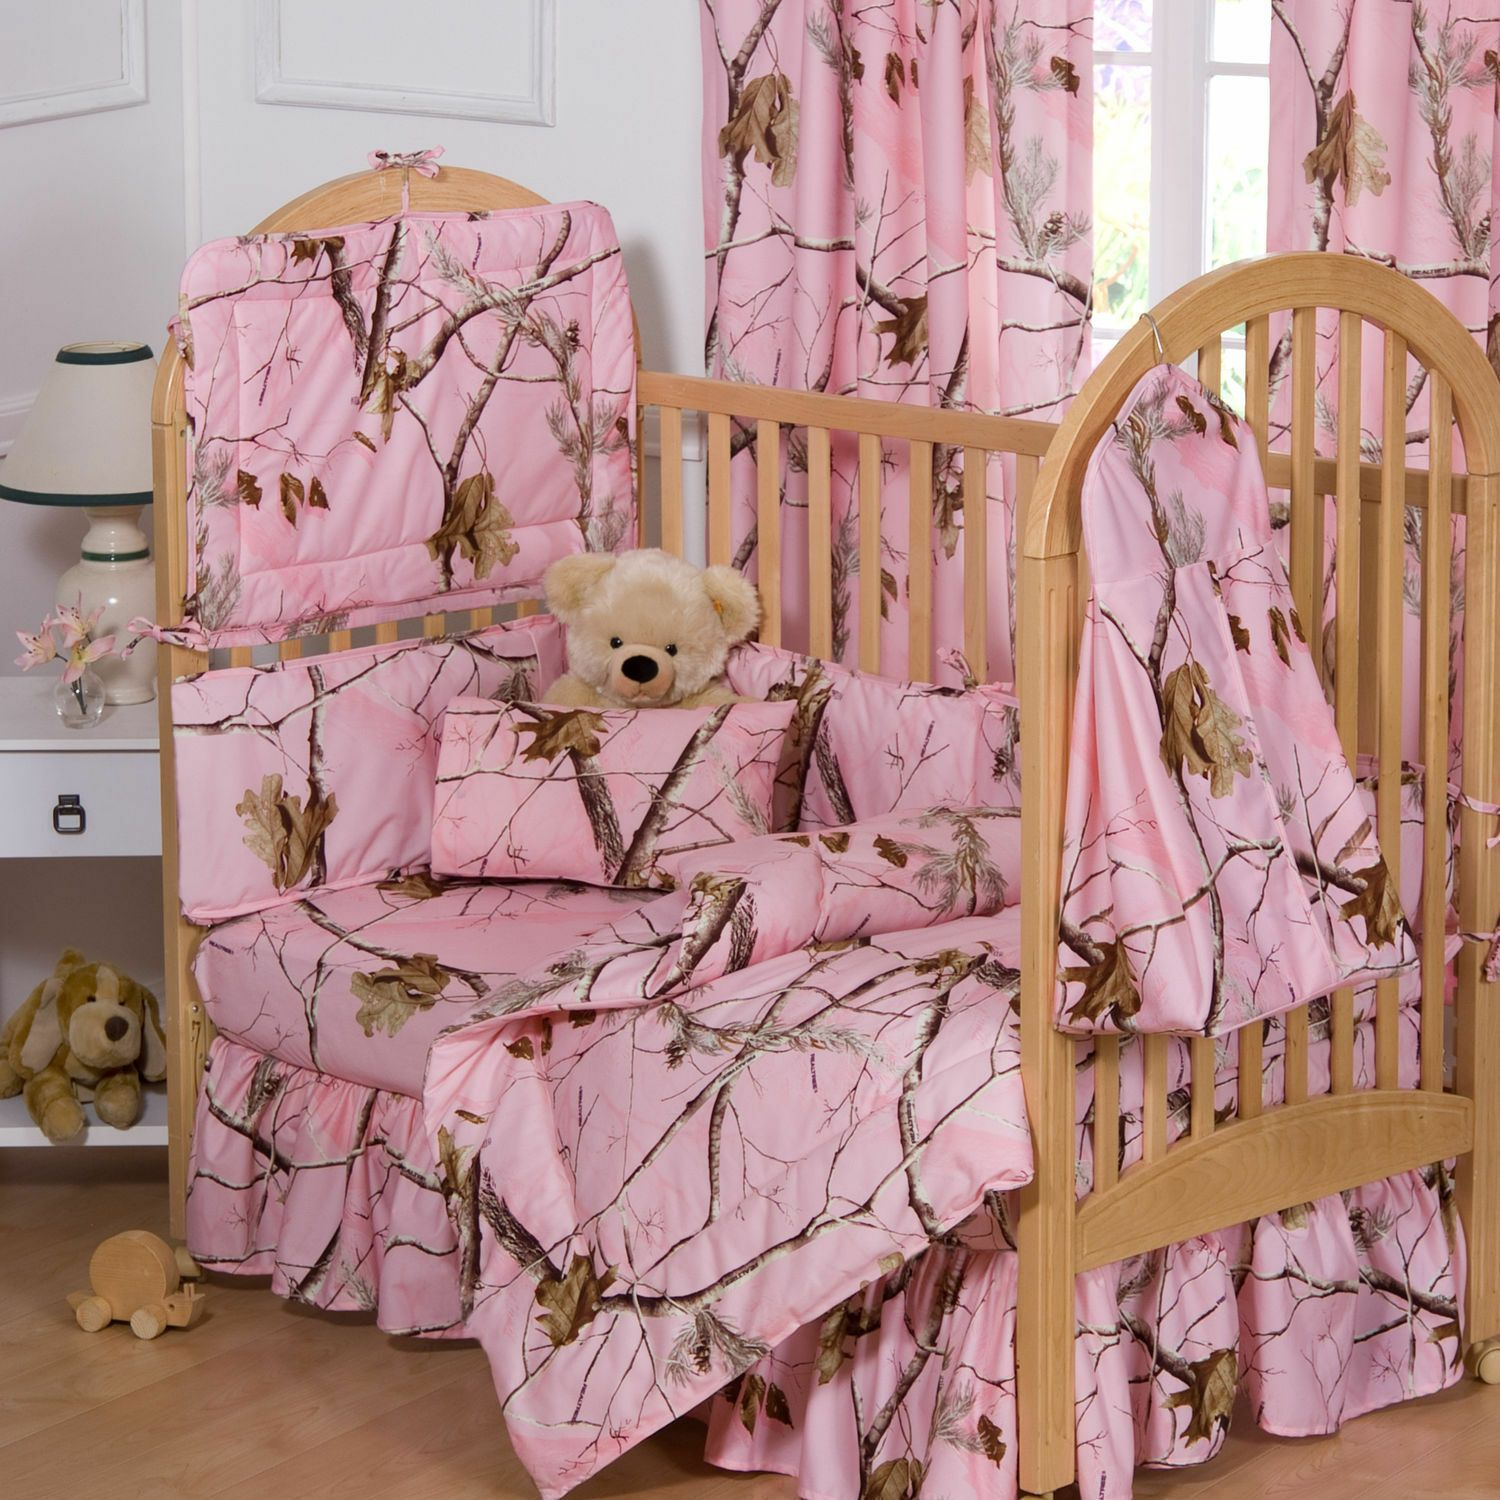 Realtree Pink Camo Crib Set 6 Pcs Camouflage Baby Toddler Bedding Baby Bed Ideas Of Baby Bed Babybed Bed Baby Realtree Pink Camo Baby Crib Sets Pink Crib Bedding Pink Crib